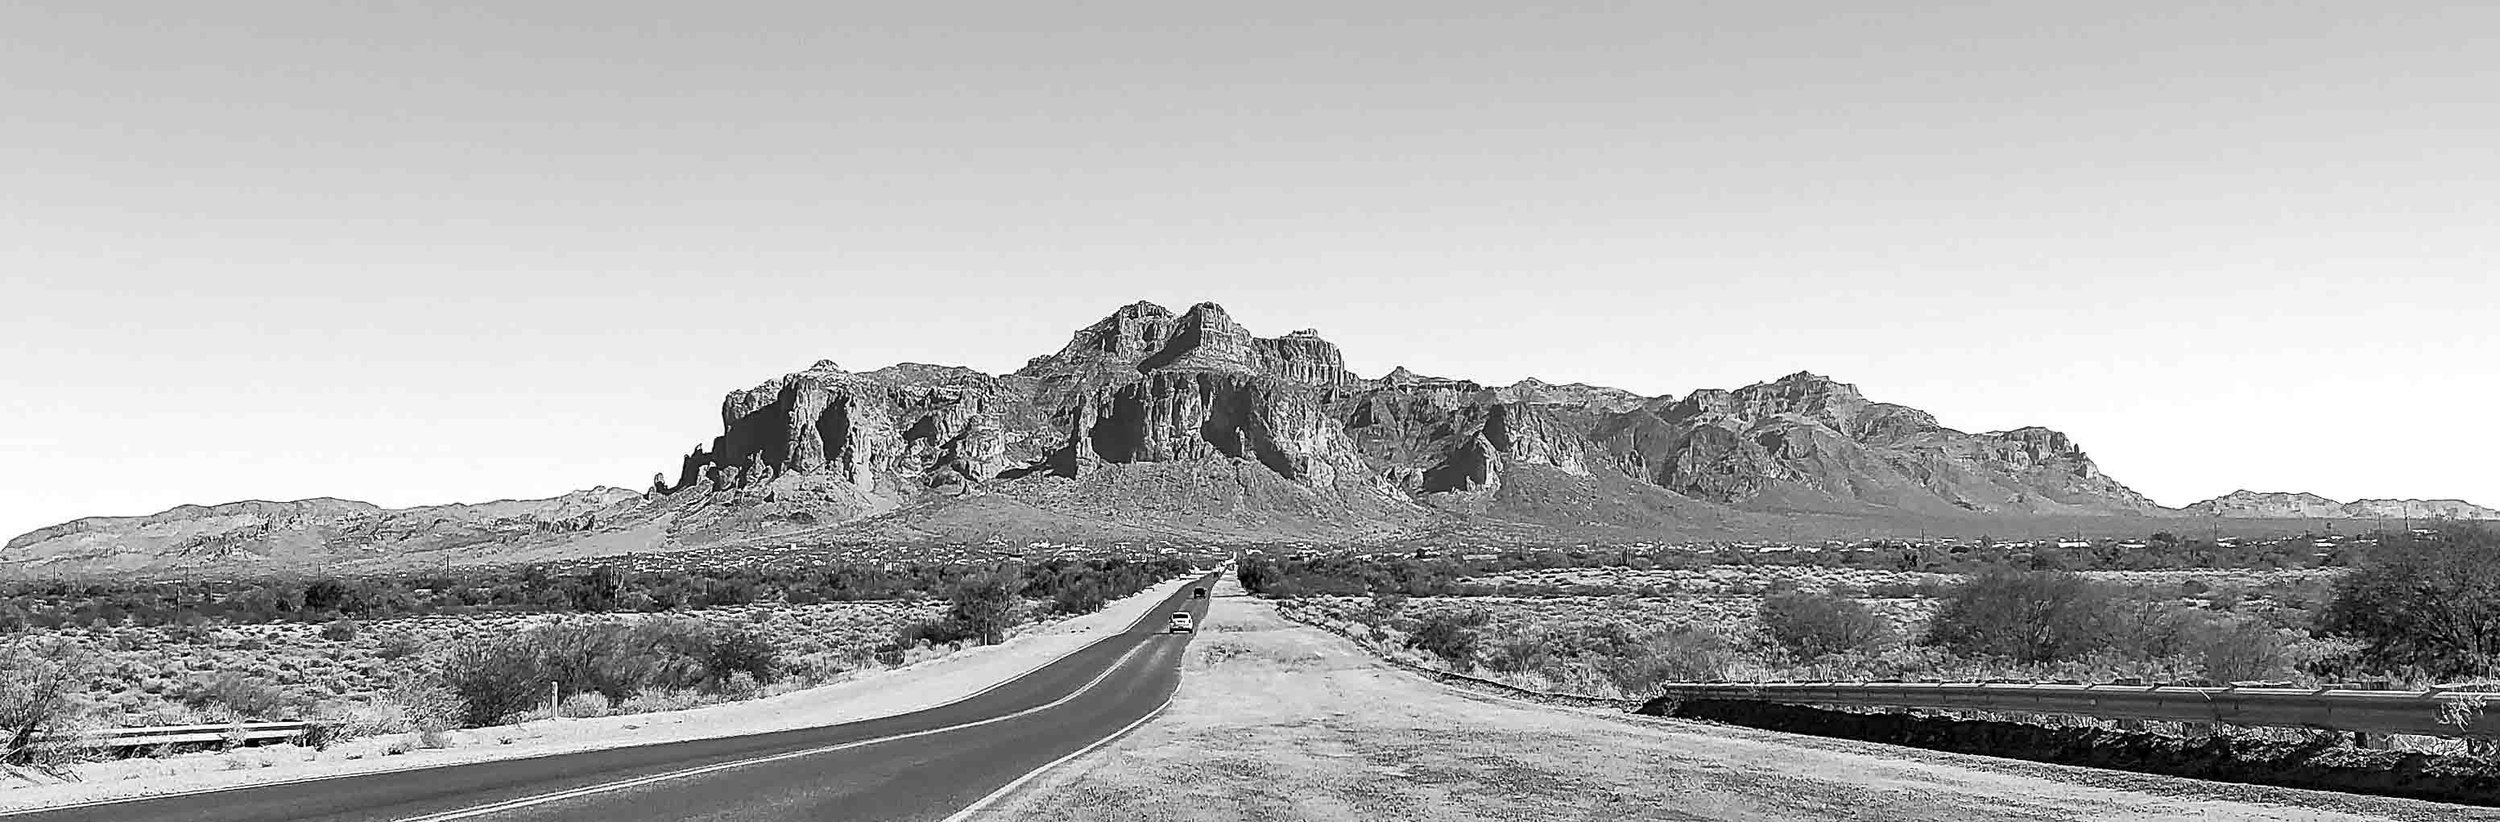 020918 Superstitions Edited BW Low Res.jpg